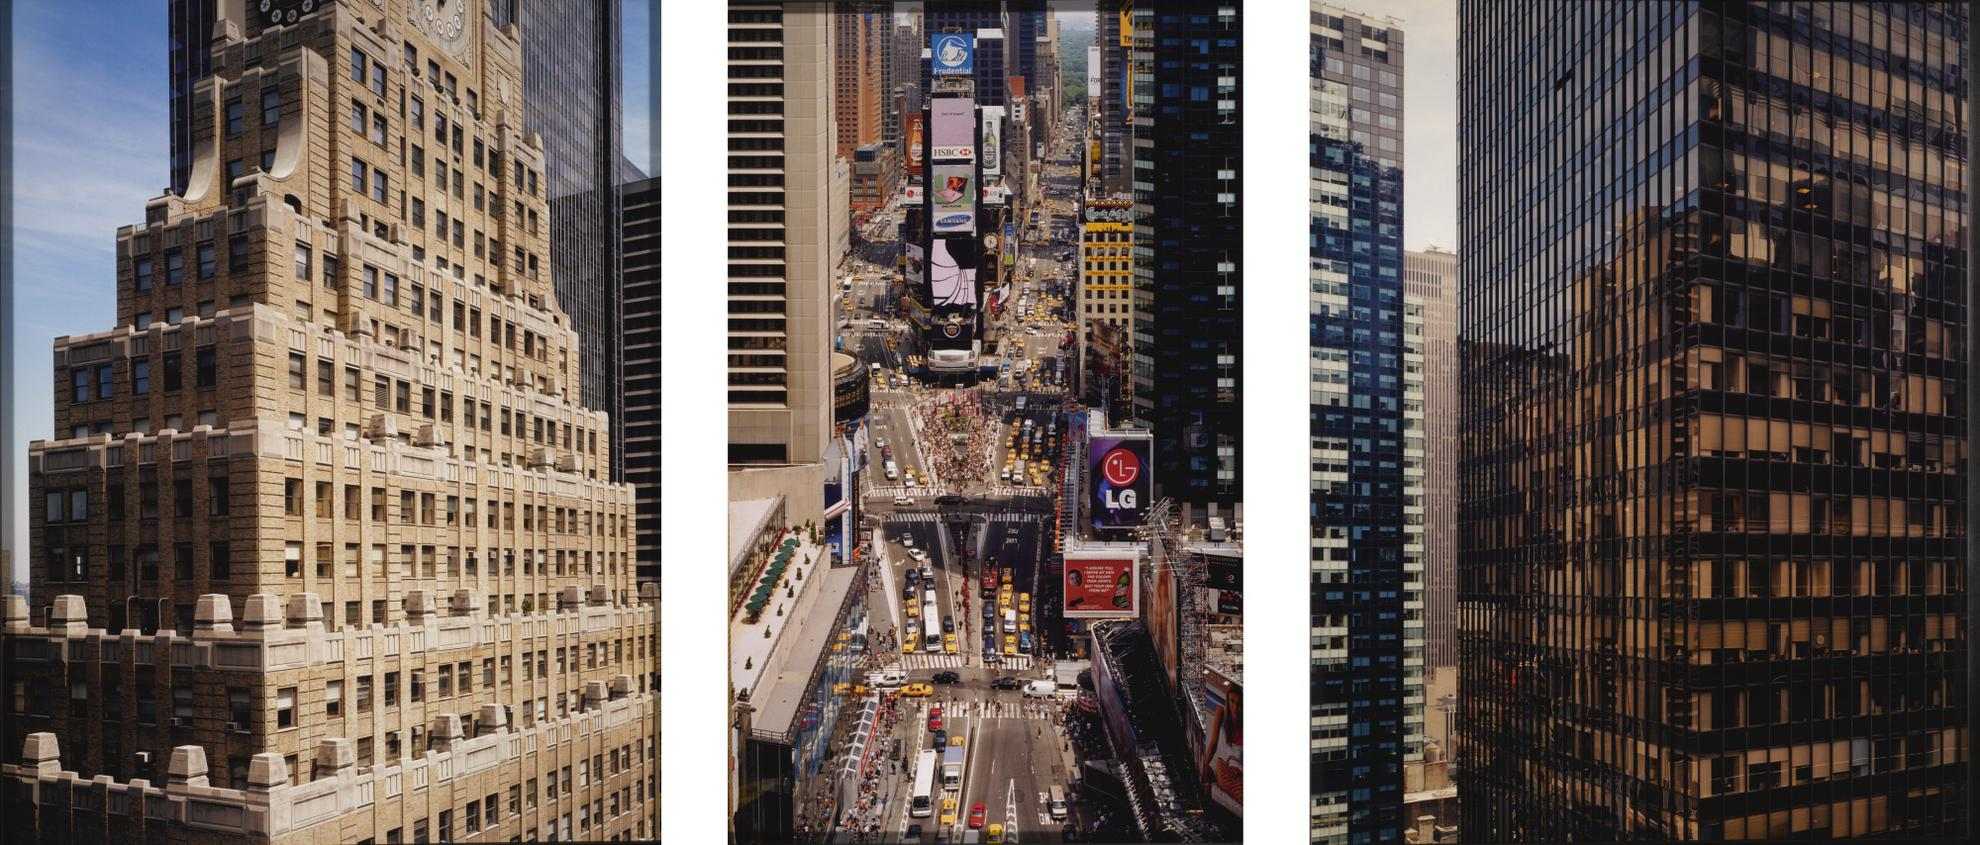 Doug Hall-Times Square-2004